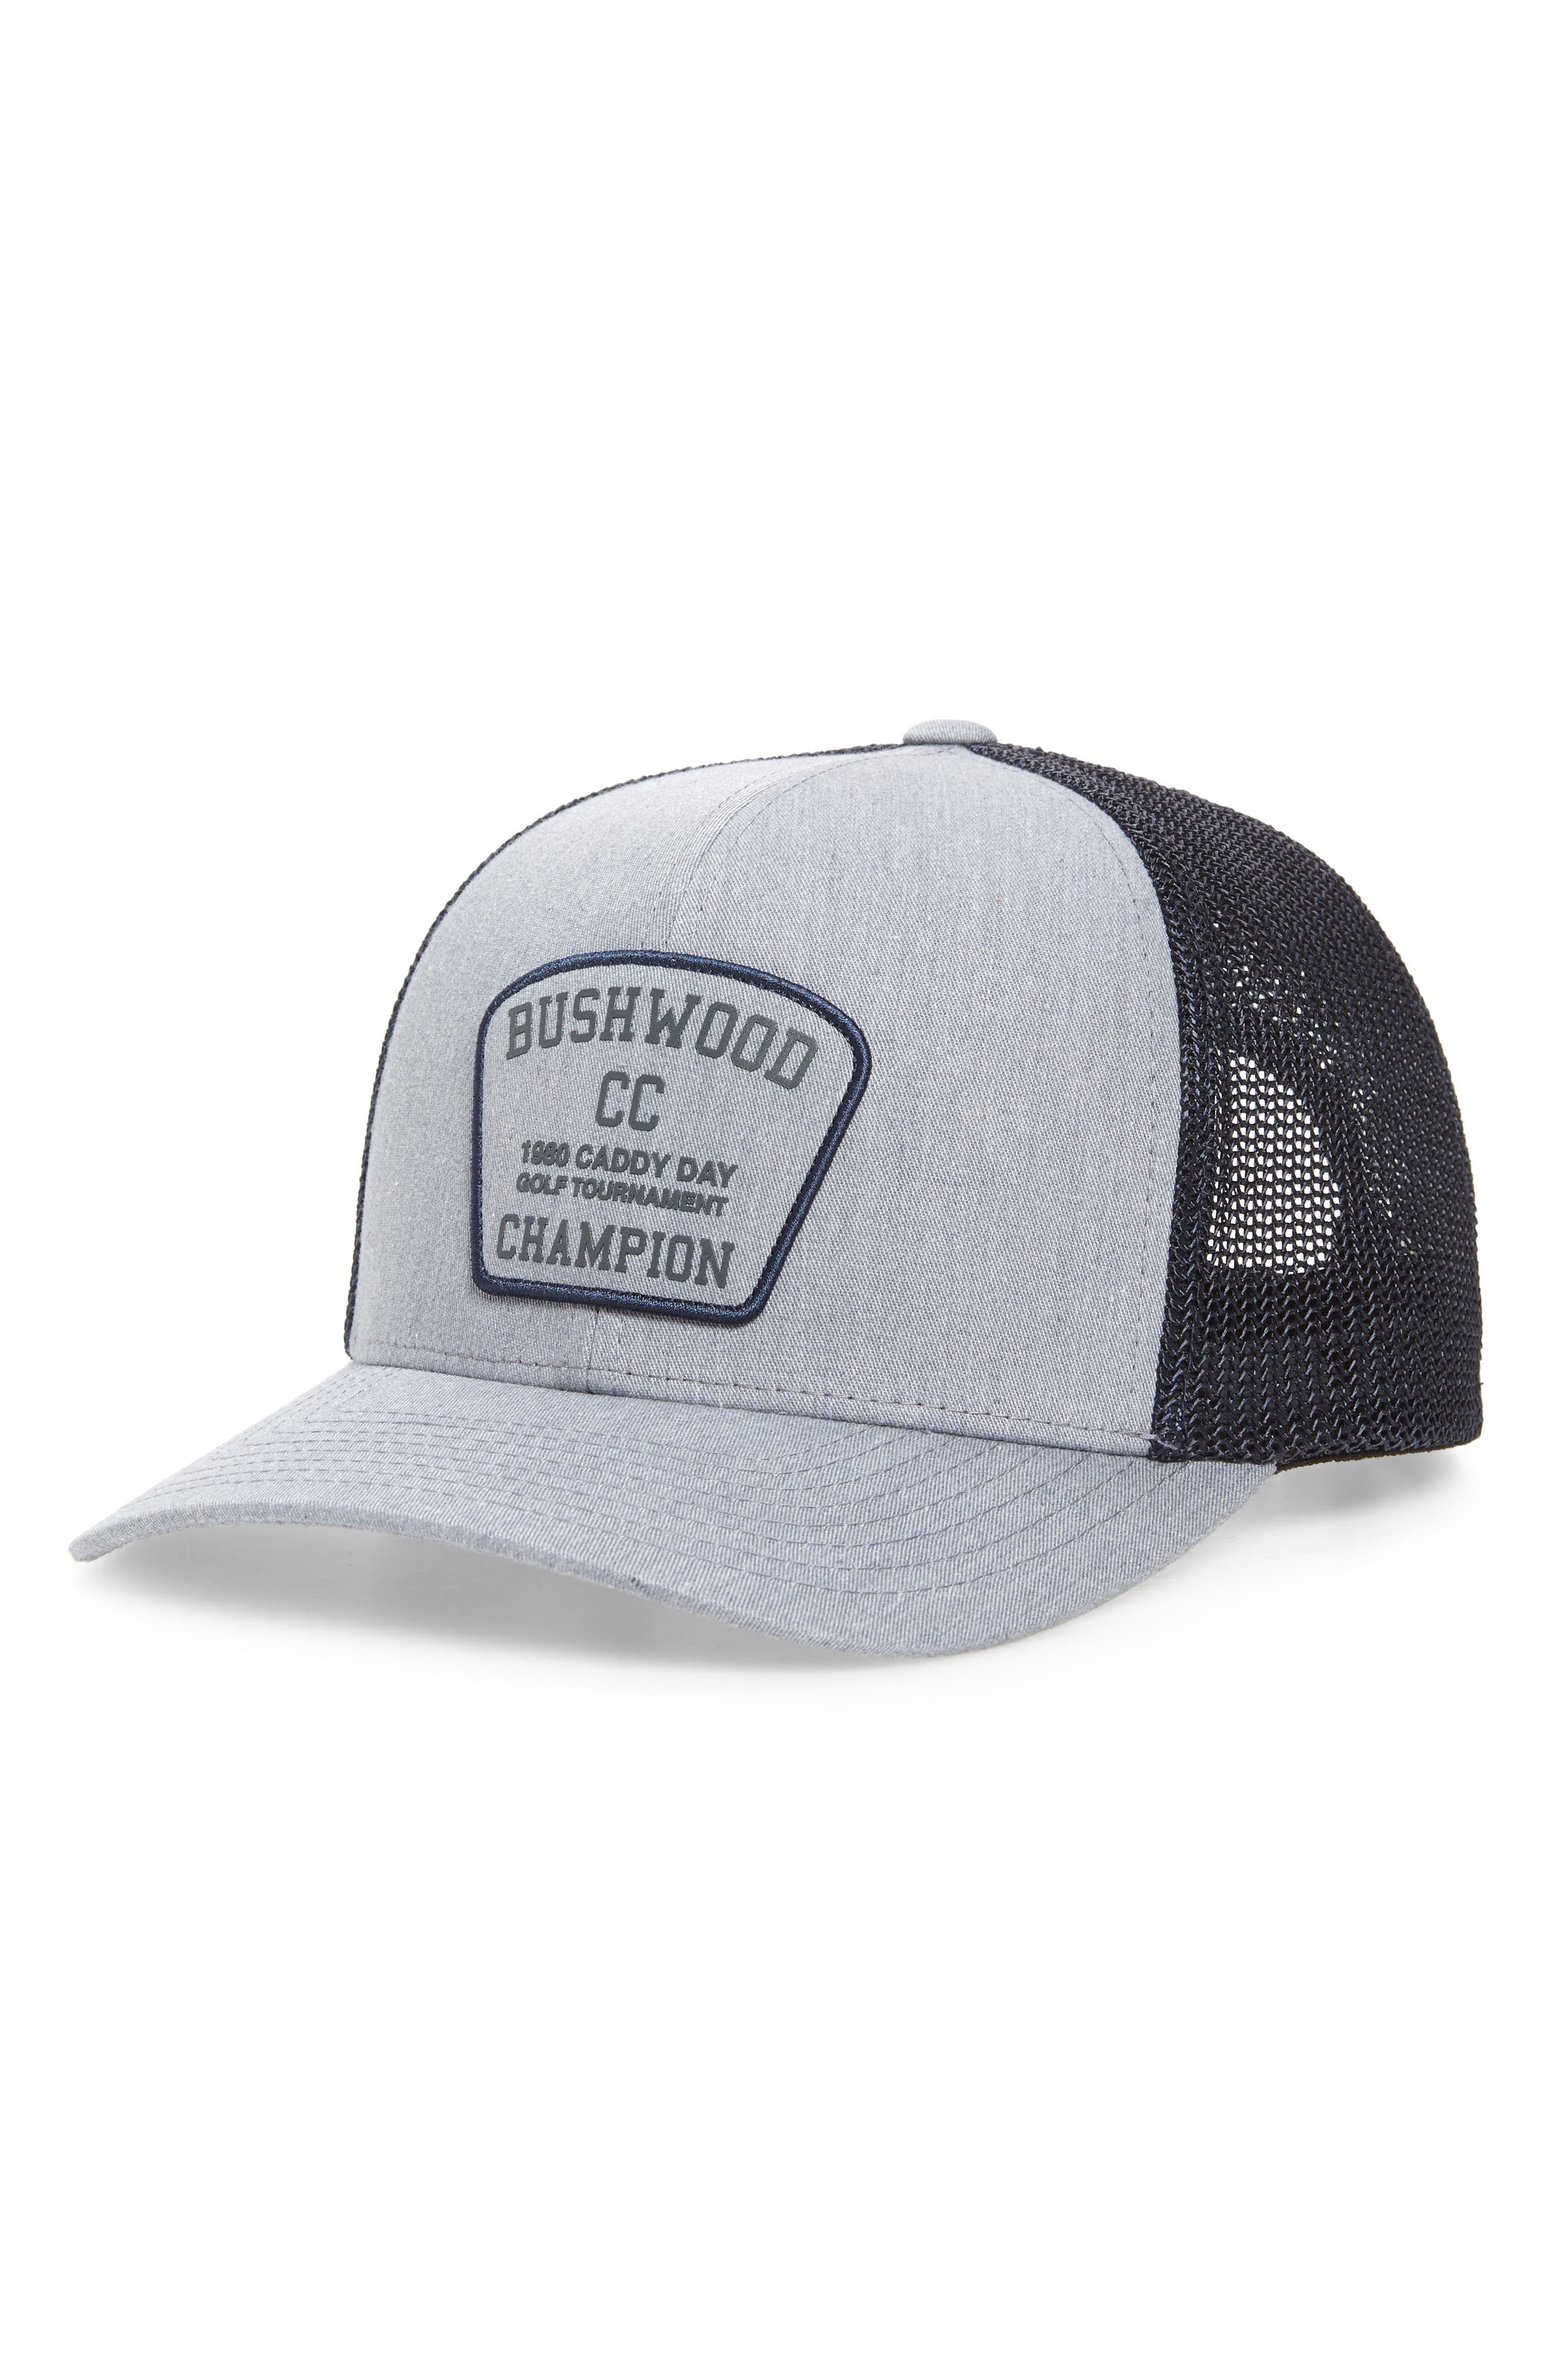 A cool vintage-style patch fronts a sweet cap that\\\'s perfect for a day on the links. Style Name: Travismathew Presidential Suite Trucker Hat. Style Number: 6051649. Available in stores.